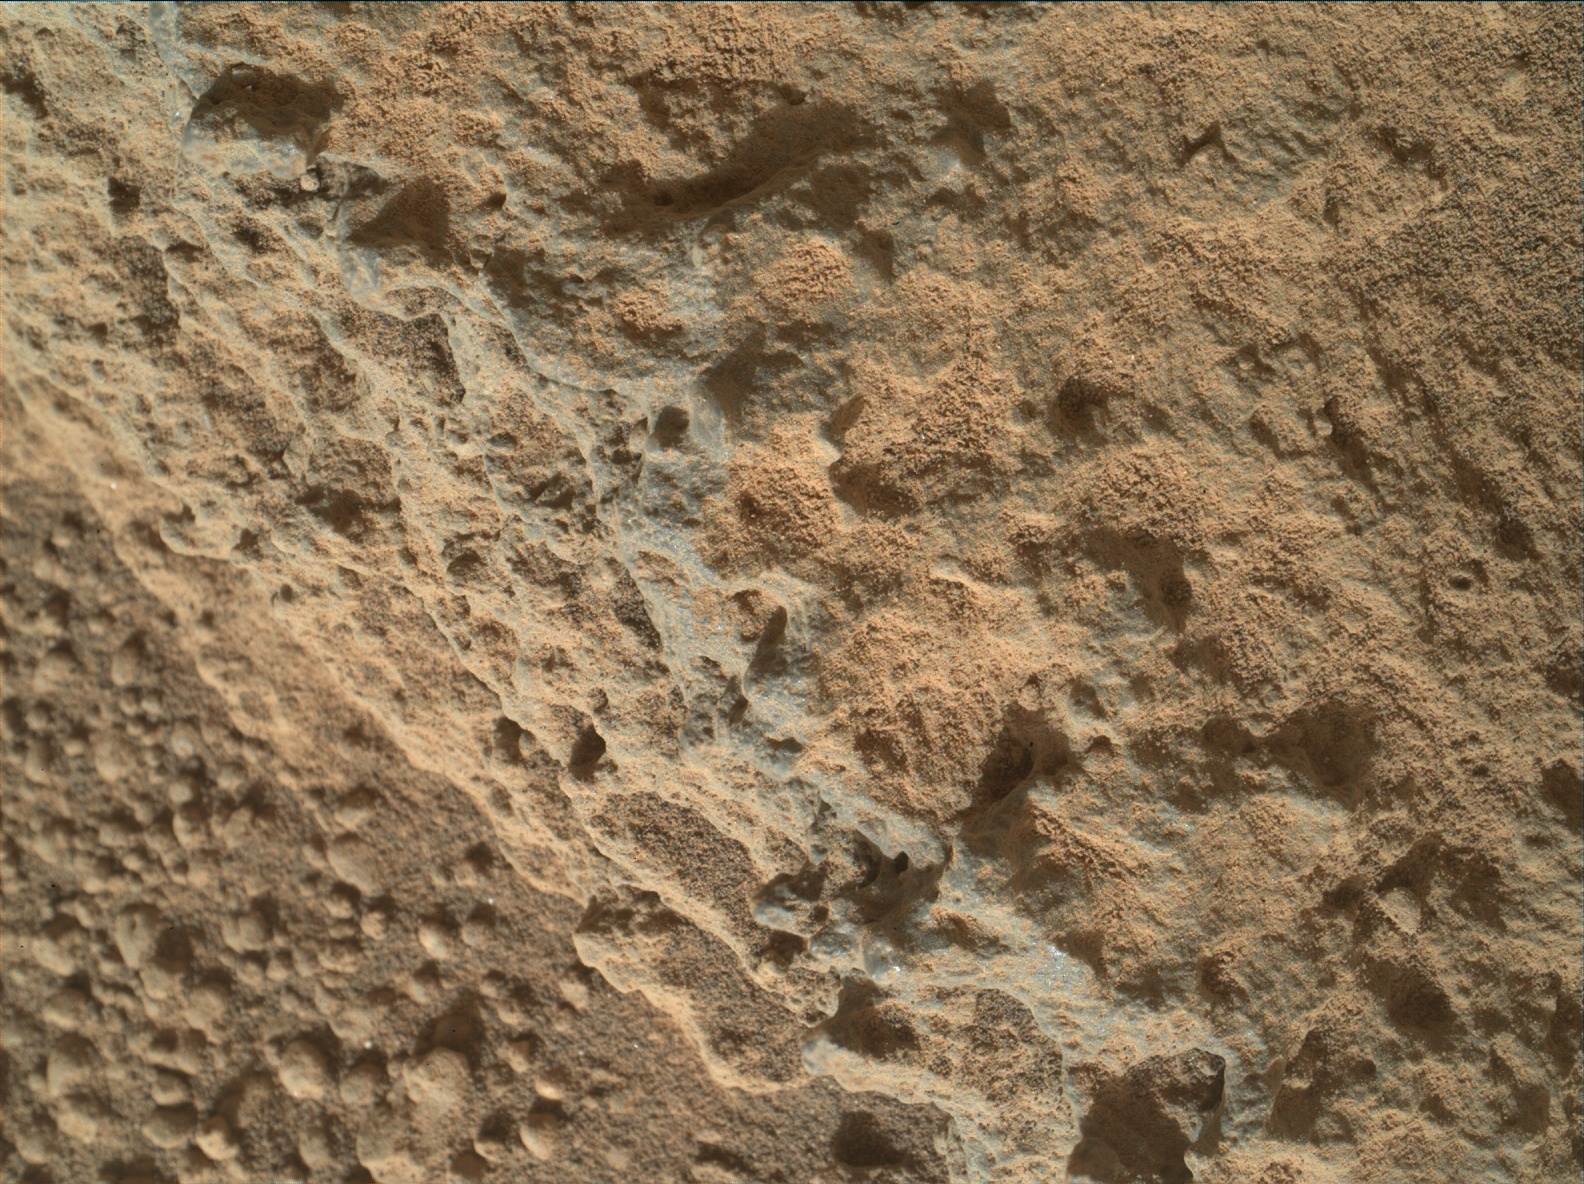 Nasa's Mars rover Curiosity acquired this image using its Mars Hand Lens Imager (MAHLI) on Sol 324